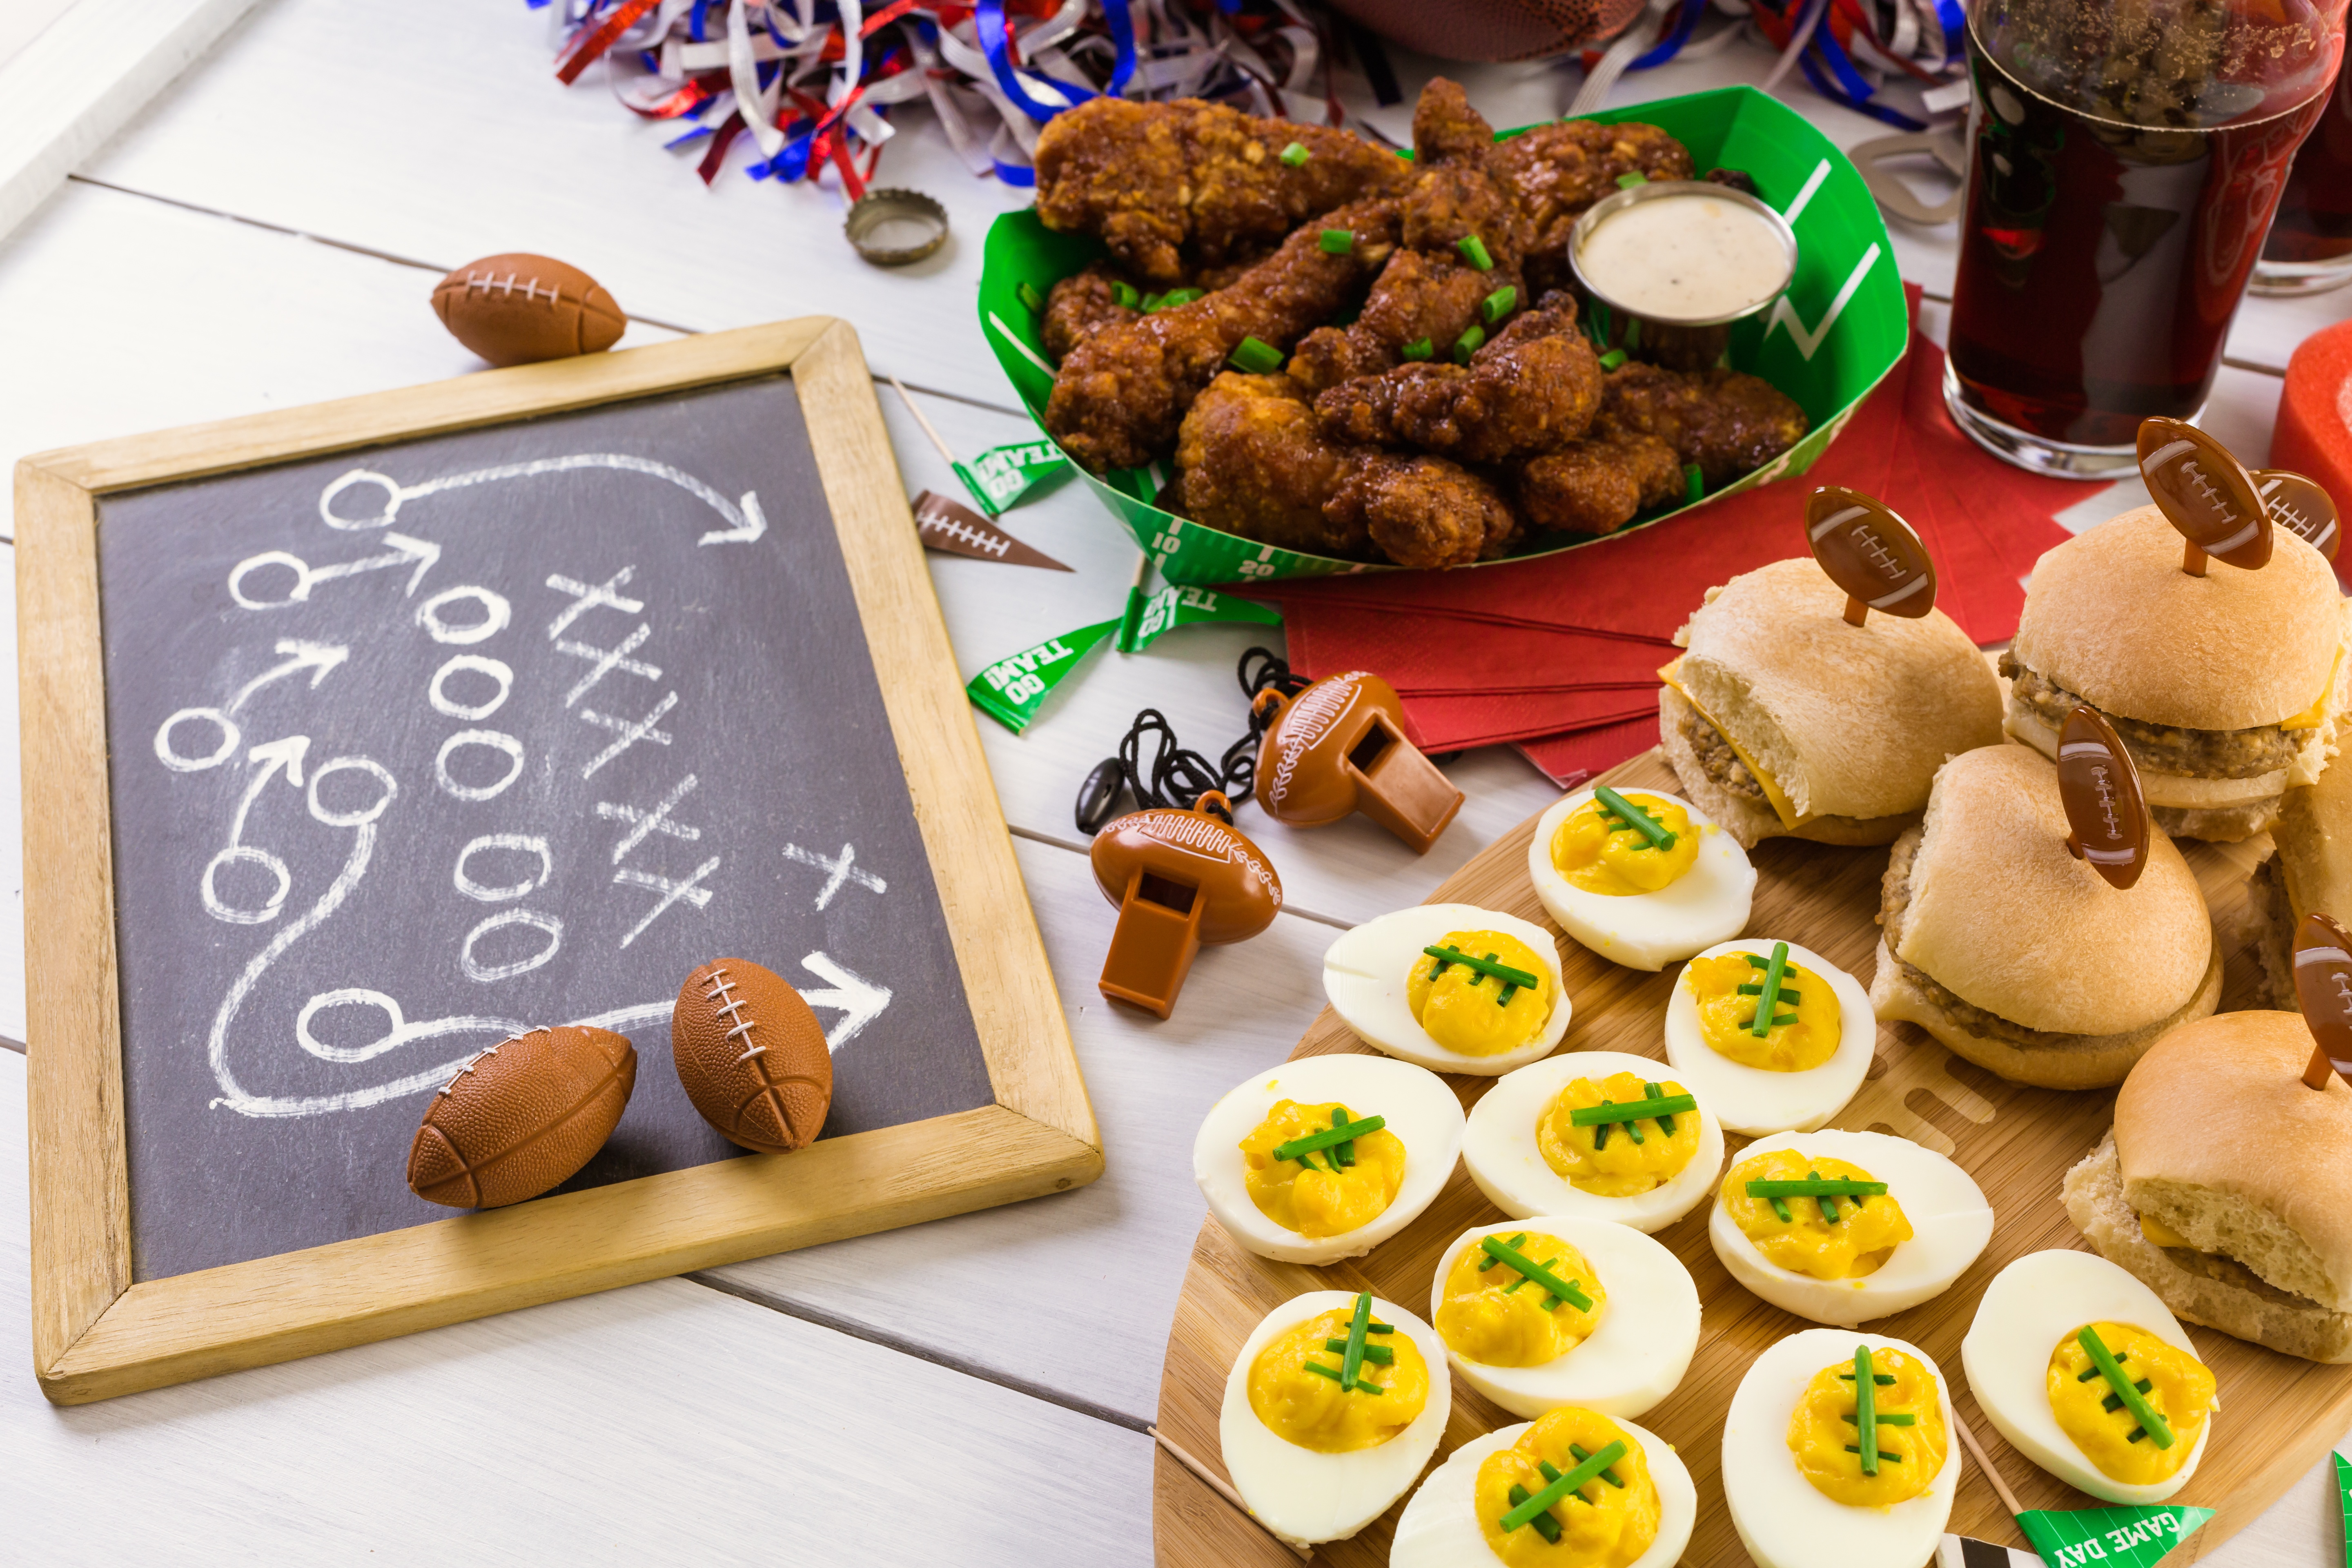 Chicken wings and snacks for The Big Game.